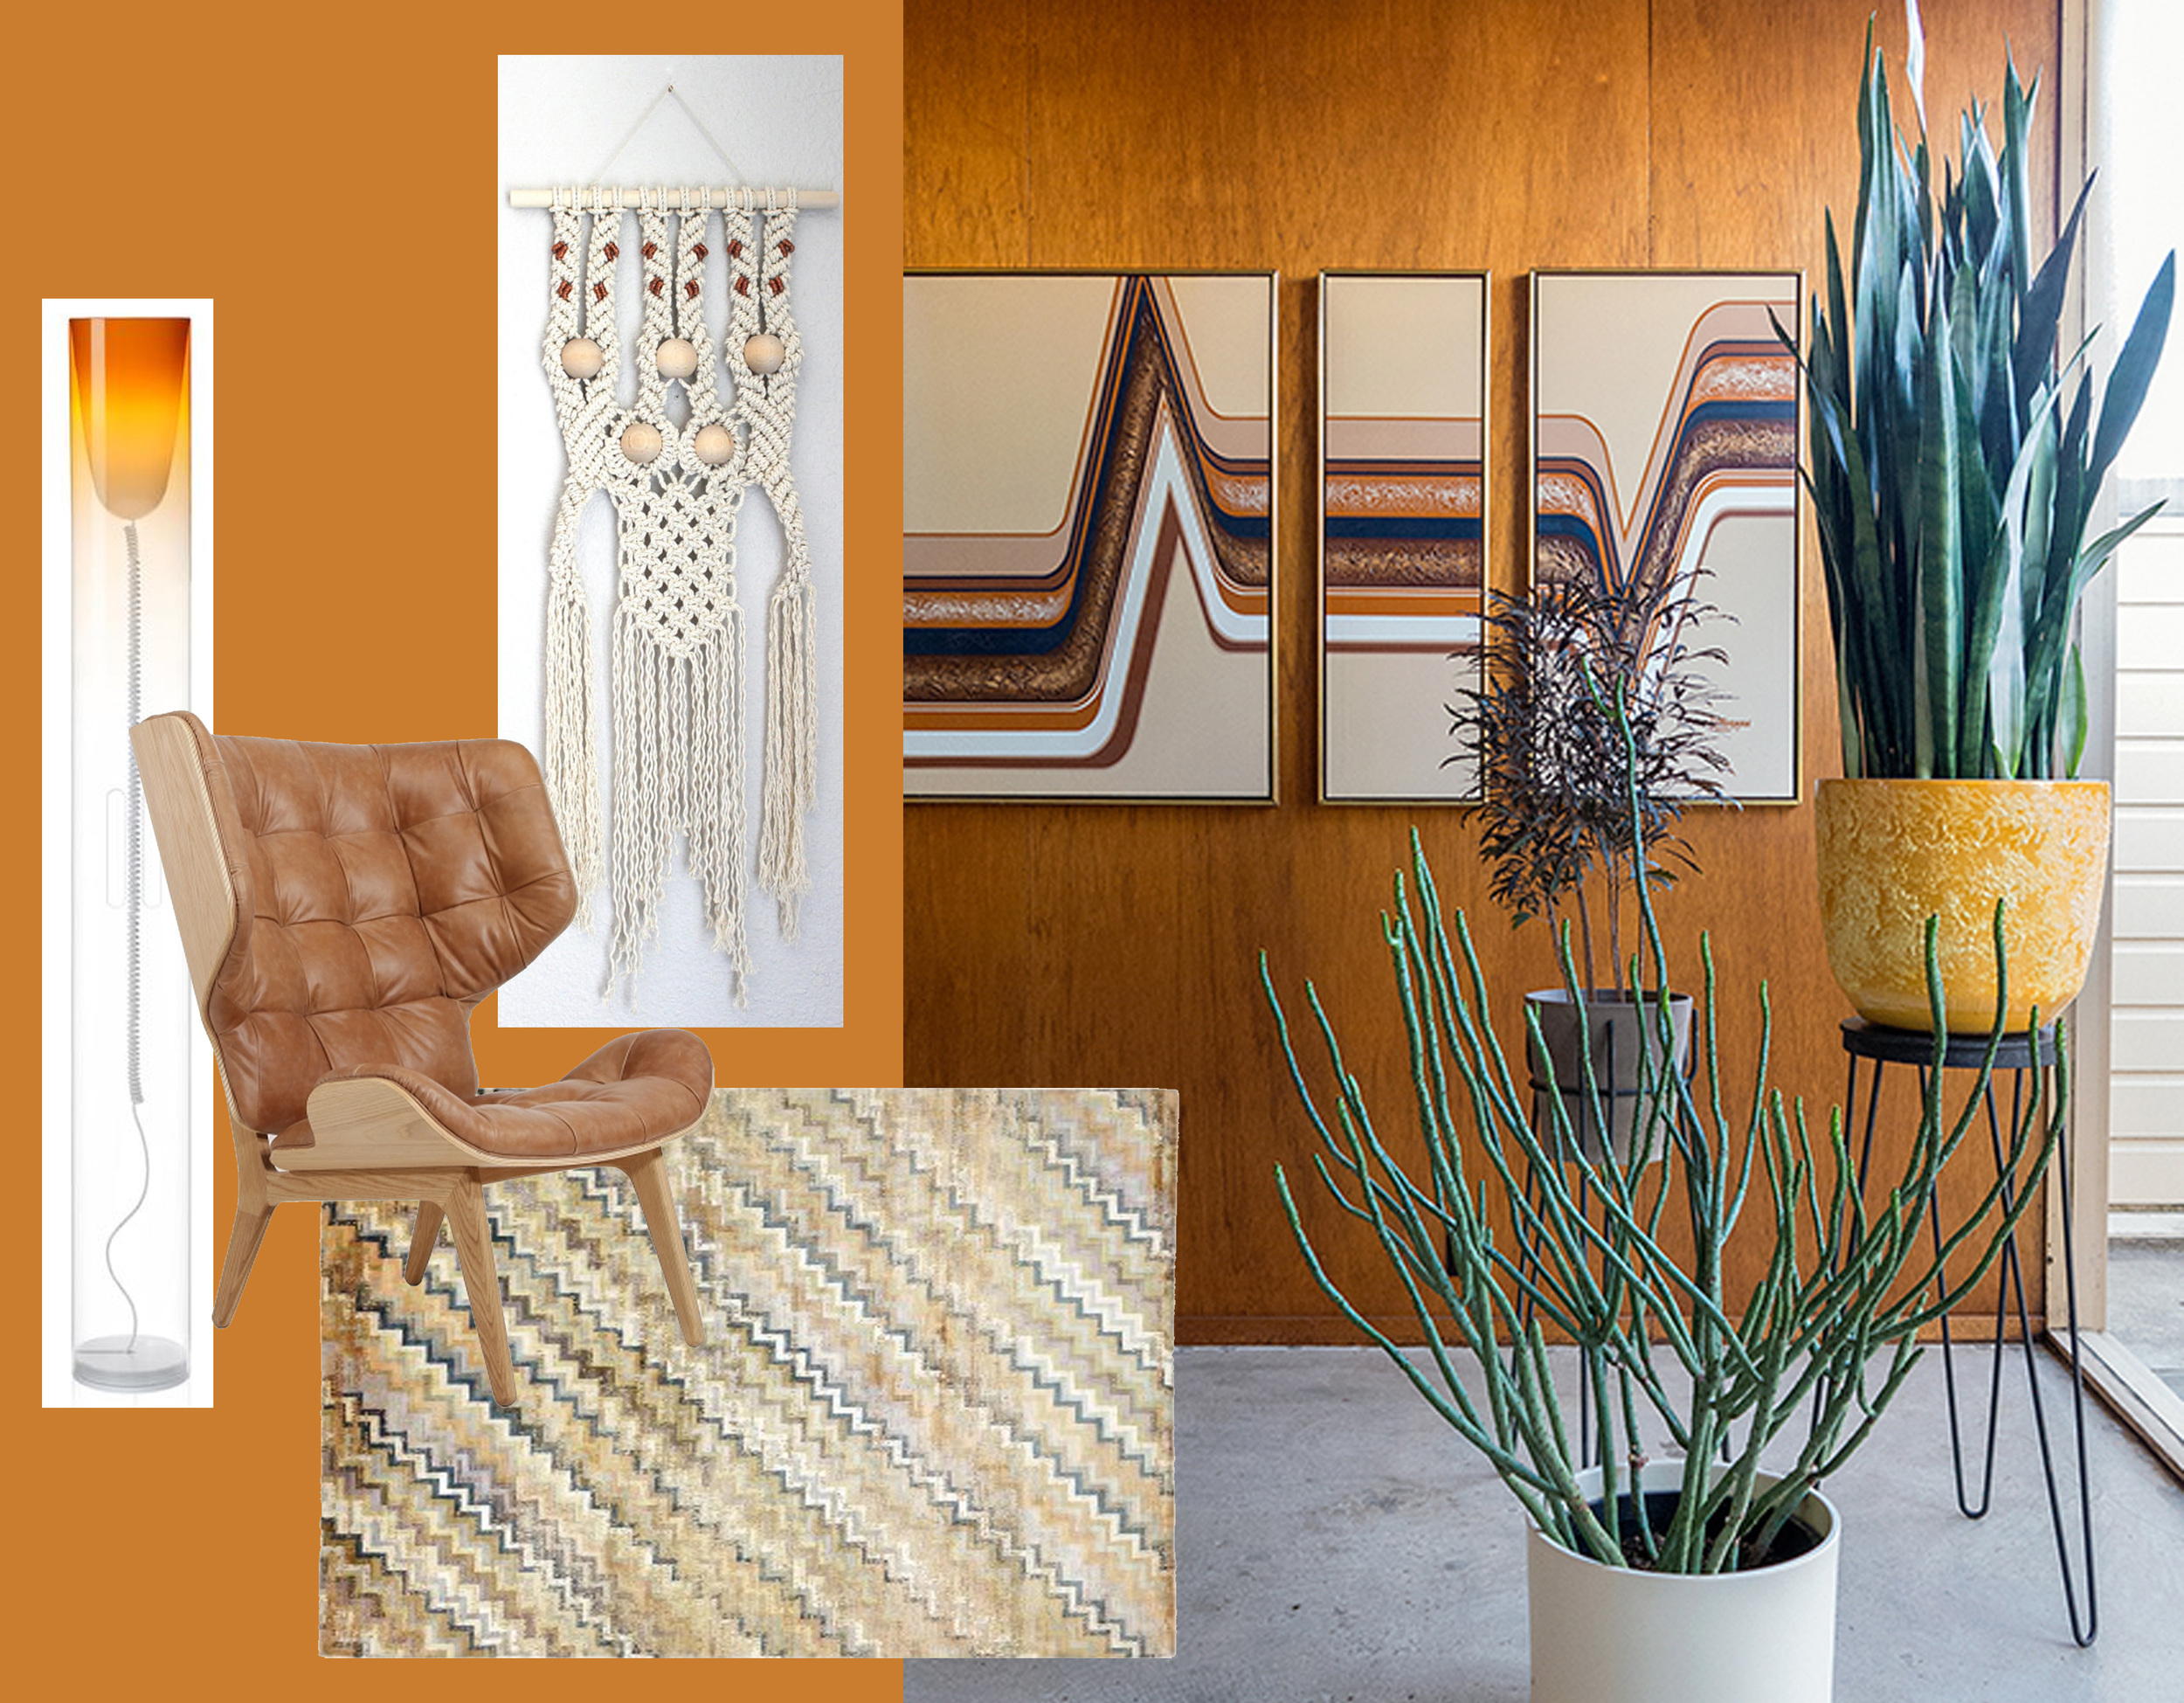 Toobe floor lamp  Kartell  - Mammoth chair  Norr 11  - Prism rug  ABC Home  - wallhanging macrame  Himoart  - vintage inspired home found on  Design Sponge